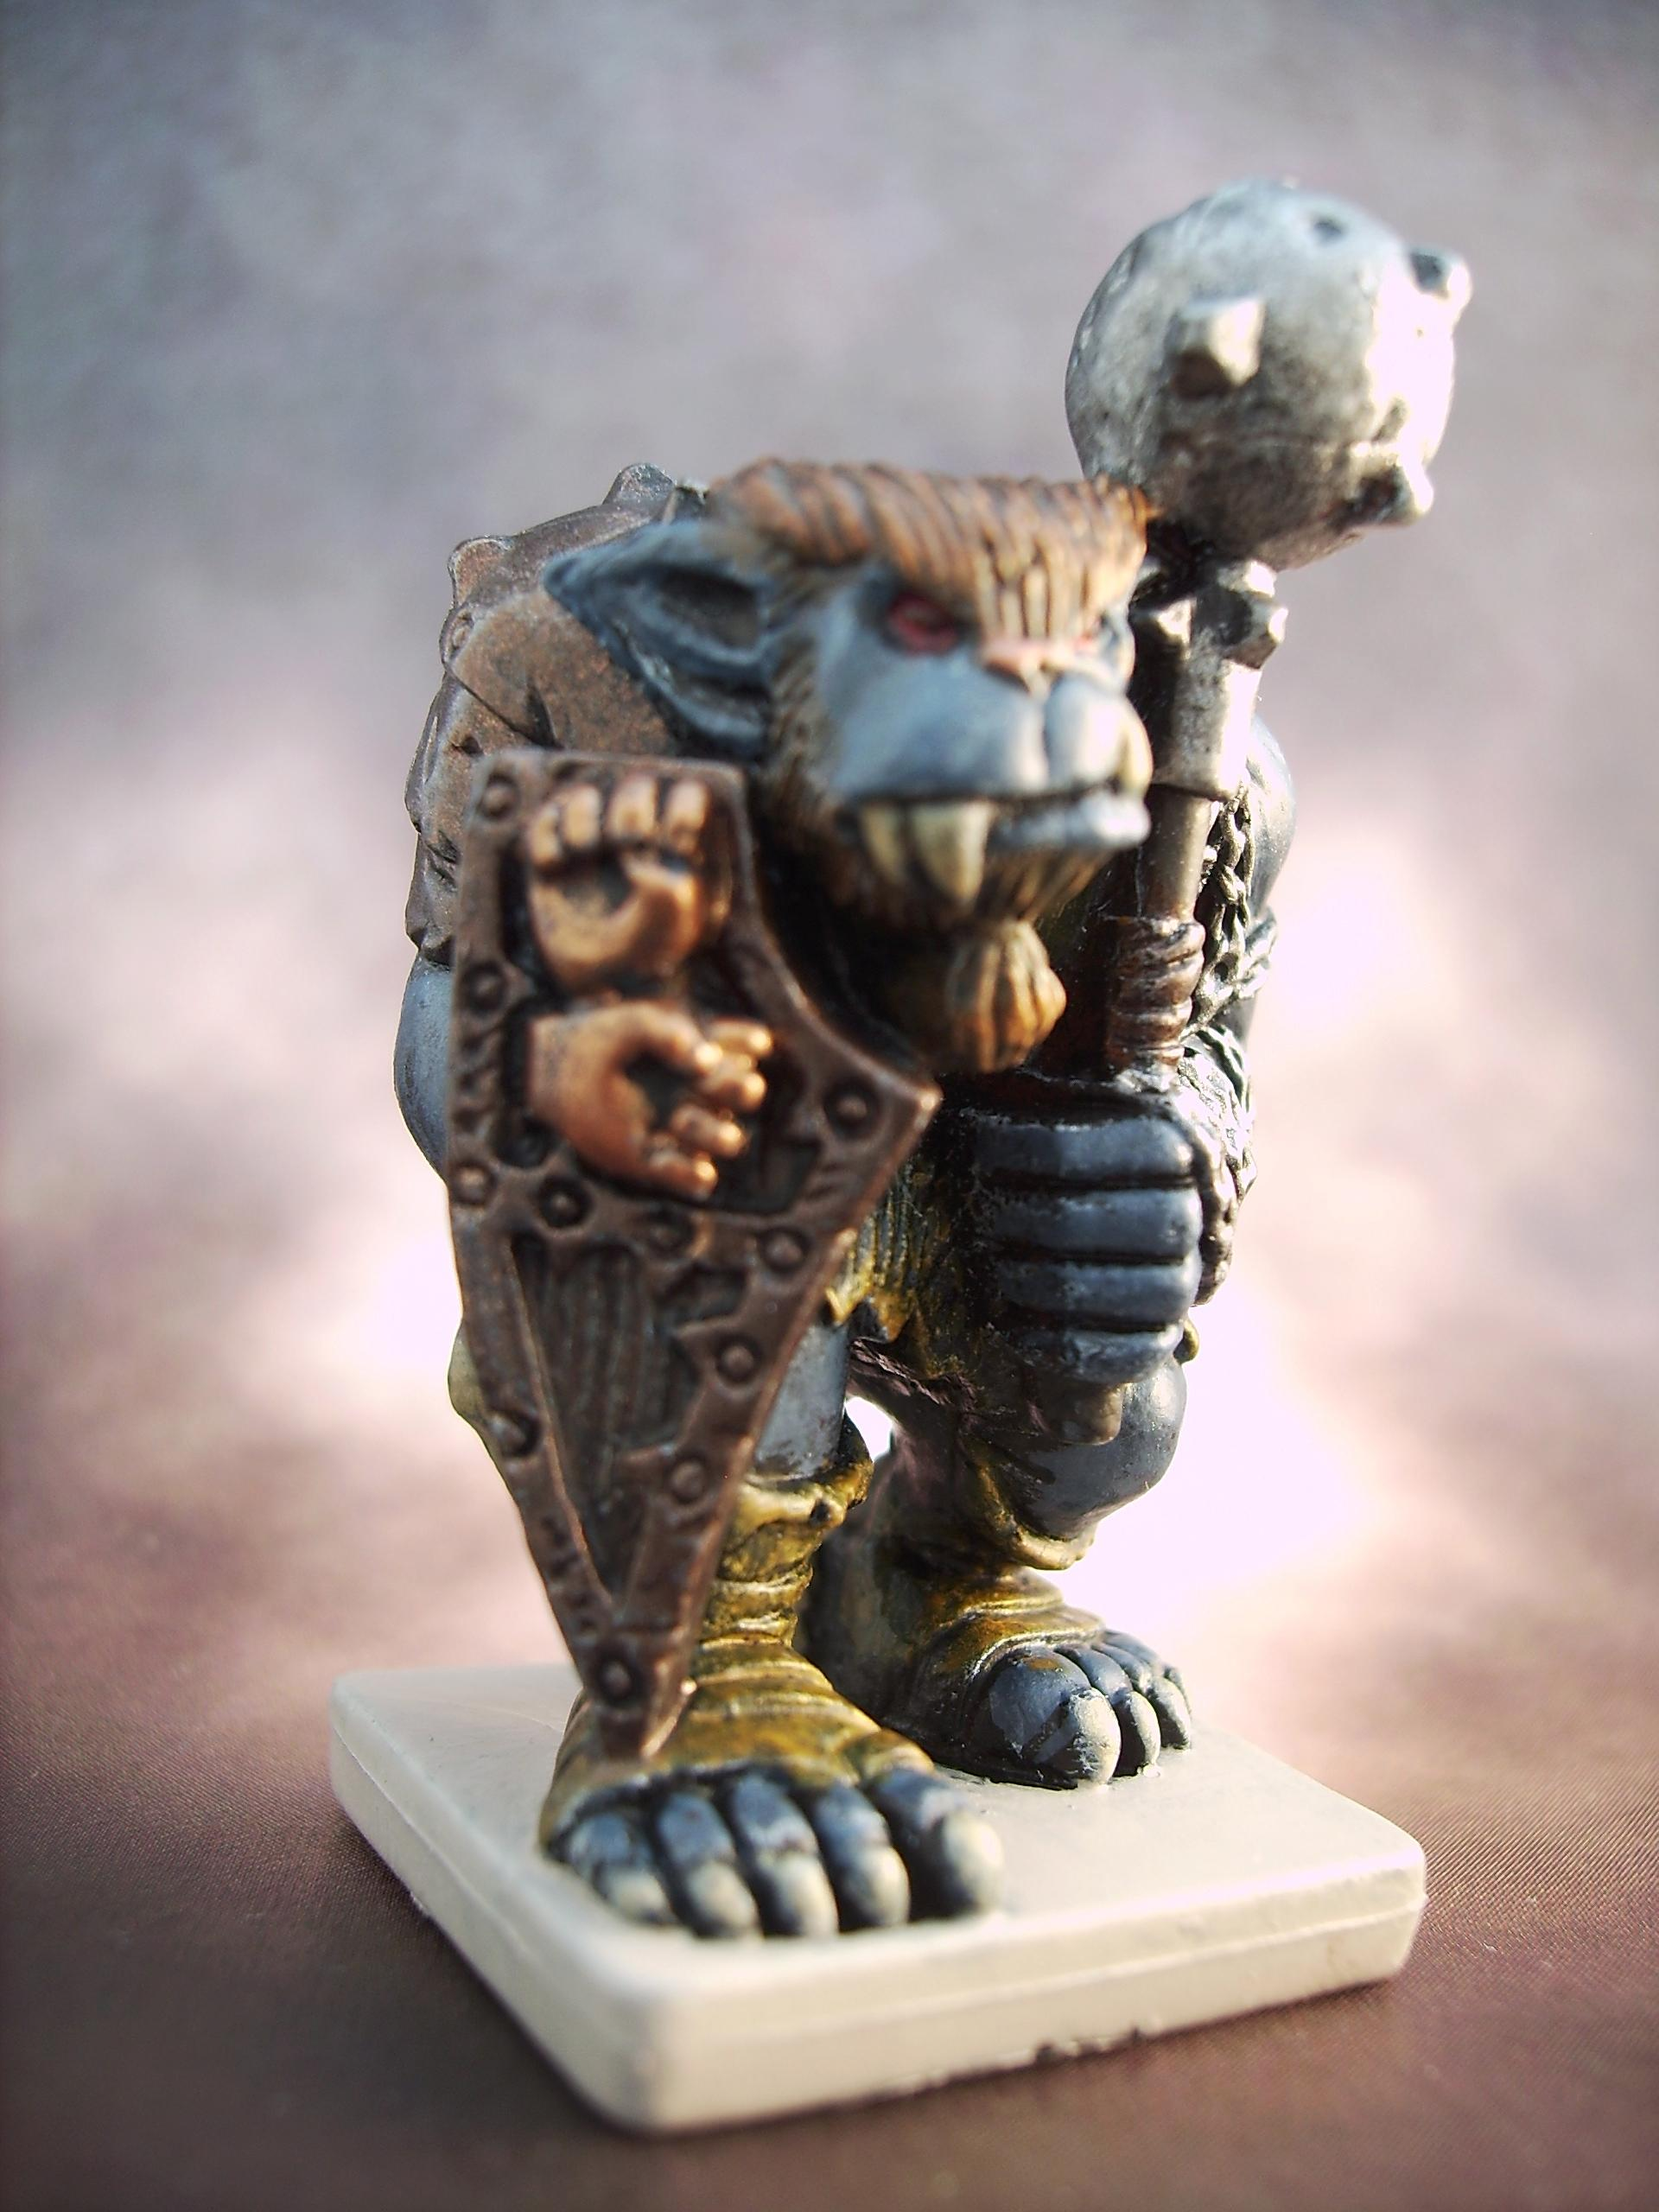 Bugbear, Dungeons And Dragons